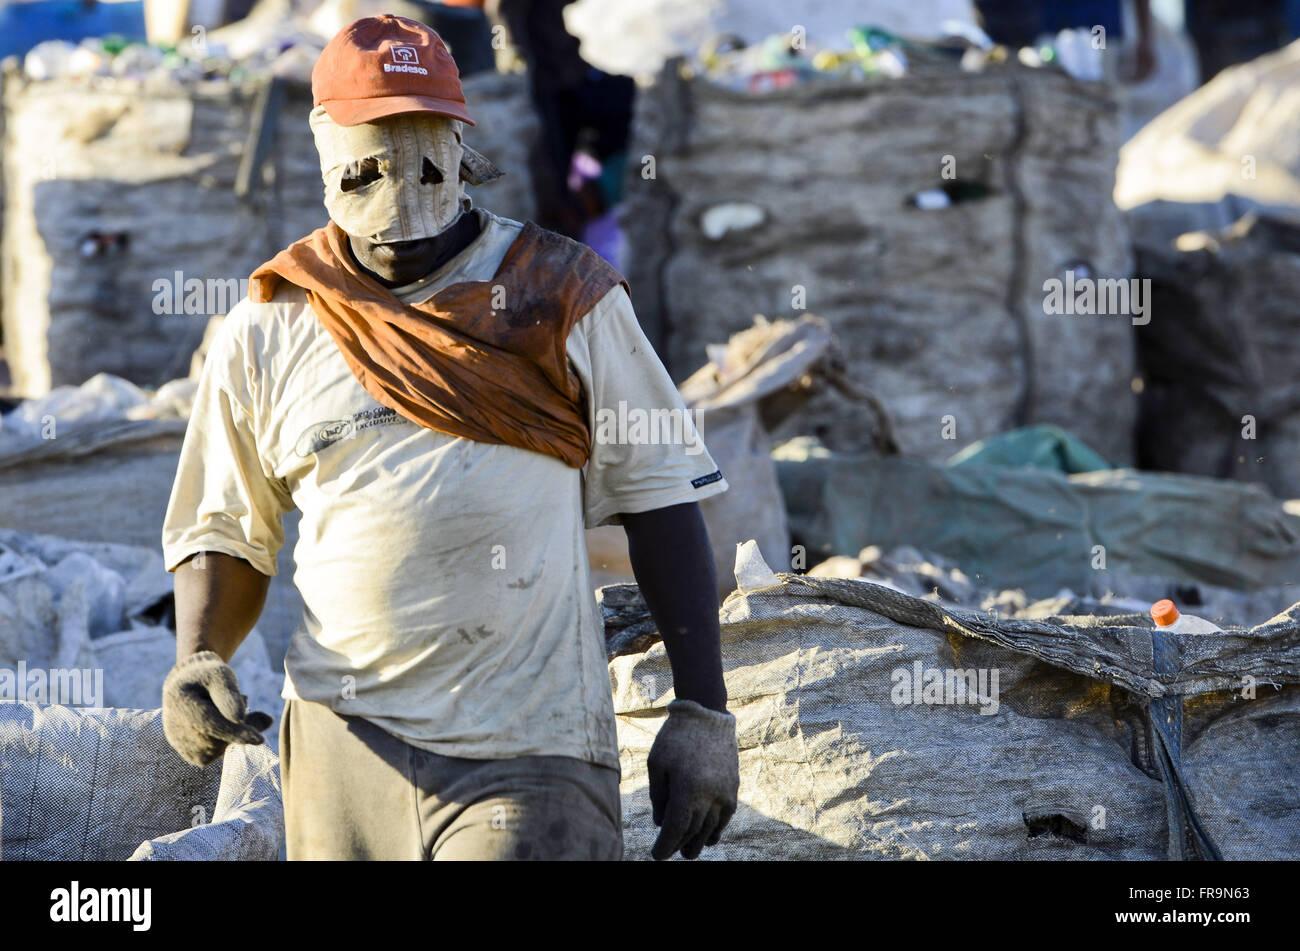 Collector and bags of recyclable garbage collected on Sanitary Landfill of Jardim Gramacho - Stock Image